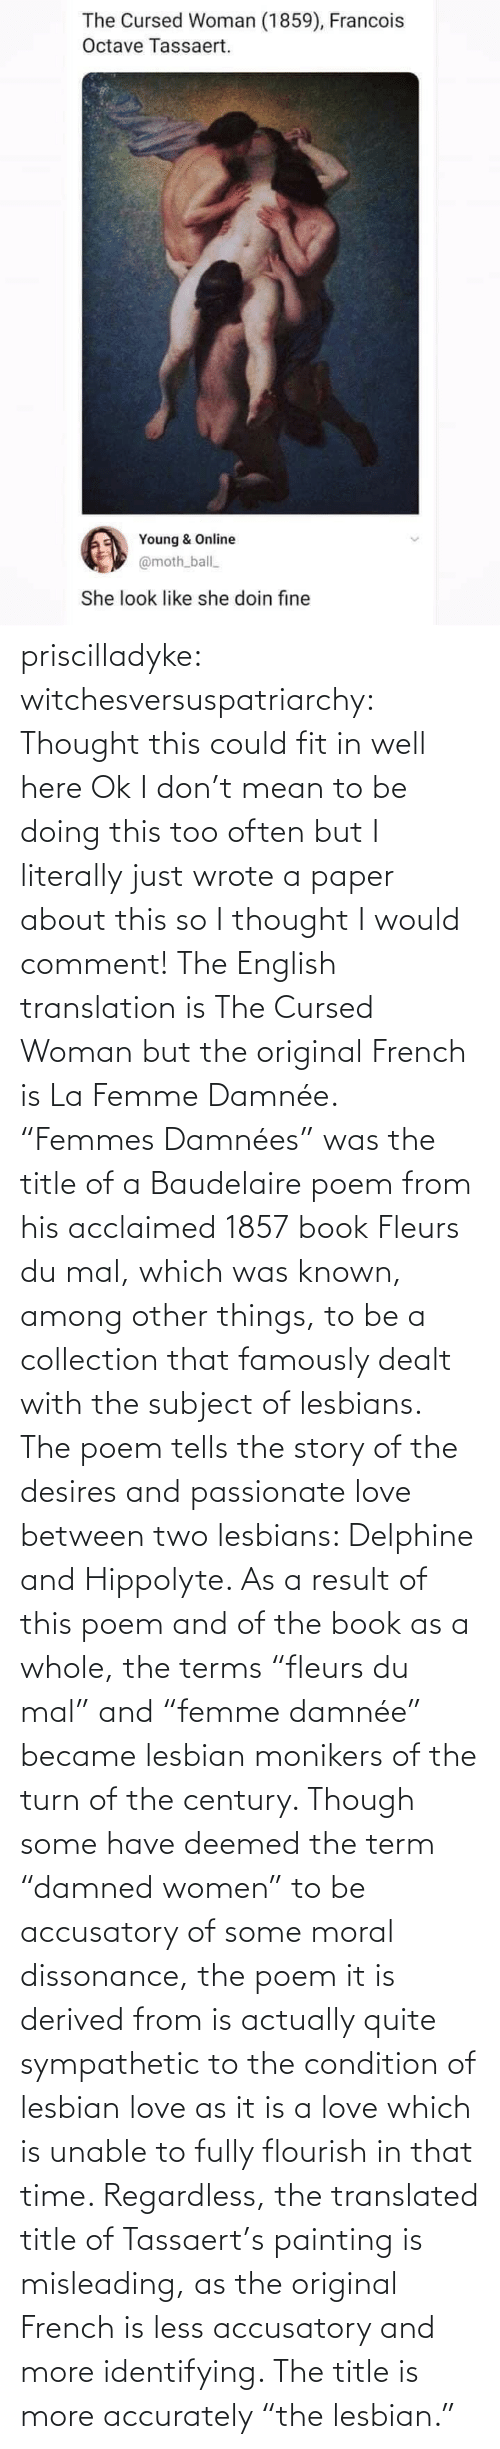 "poem: priscilladyke:  witchesversuspatriarchy: Thought this could fit in well here   Ok I don't mean to be doing this too often but I literally just wrote a paper about this so I thought I would comment! The English translation is The Cursed Woman but the original French is La Femme Damnée. ""Femmes Damnées"" was the title of a Baudelaire poem from his acclaimed 1857 book Fleurs du mal, which was known, among other things, to be a collection that famously dealt with the subject of lesbians. The poem tells the story of the desires and passionate love between two lesbians:  Delphine and Hippolyte. As a result of this poem and of the book as a whole, the terms ""fleurs du mal"" and ""femme damnée"" became lesbian monikers of the turn of the century. Though some have deemed the term ""damned women"" to be accusatory of some moral dissonance, the poem it is derived from is actually quite sympathetic to the condition of lesbian love as it is a love which is unable to fully flourish in that time. Regardless, the translated title of Tassaert's painting is misleading, as the original French is less accusatory and more identifying. The title is more accurately ""the lesbian."""